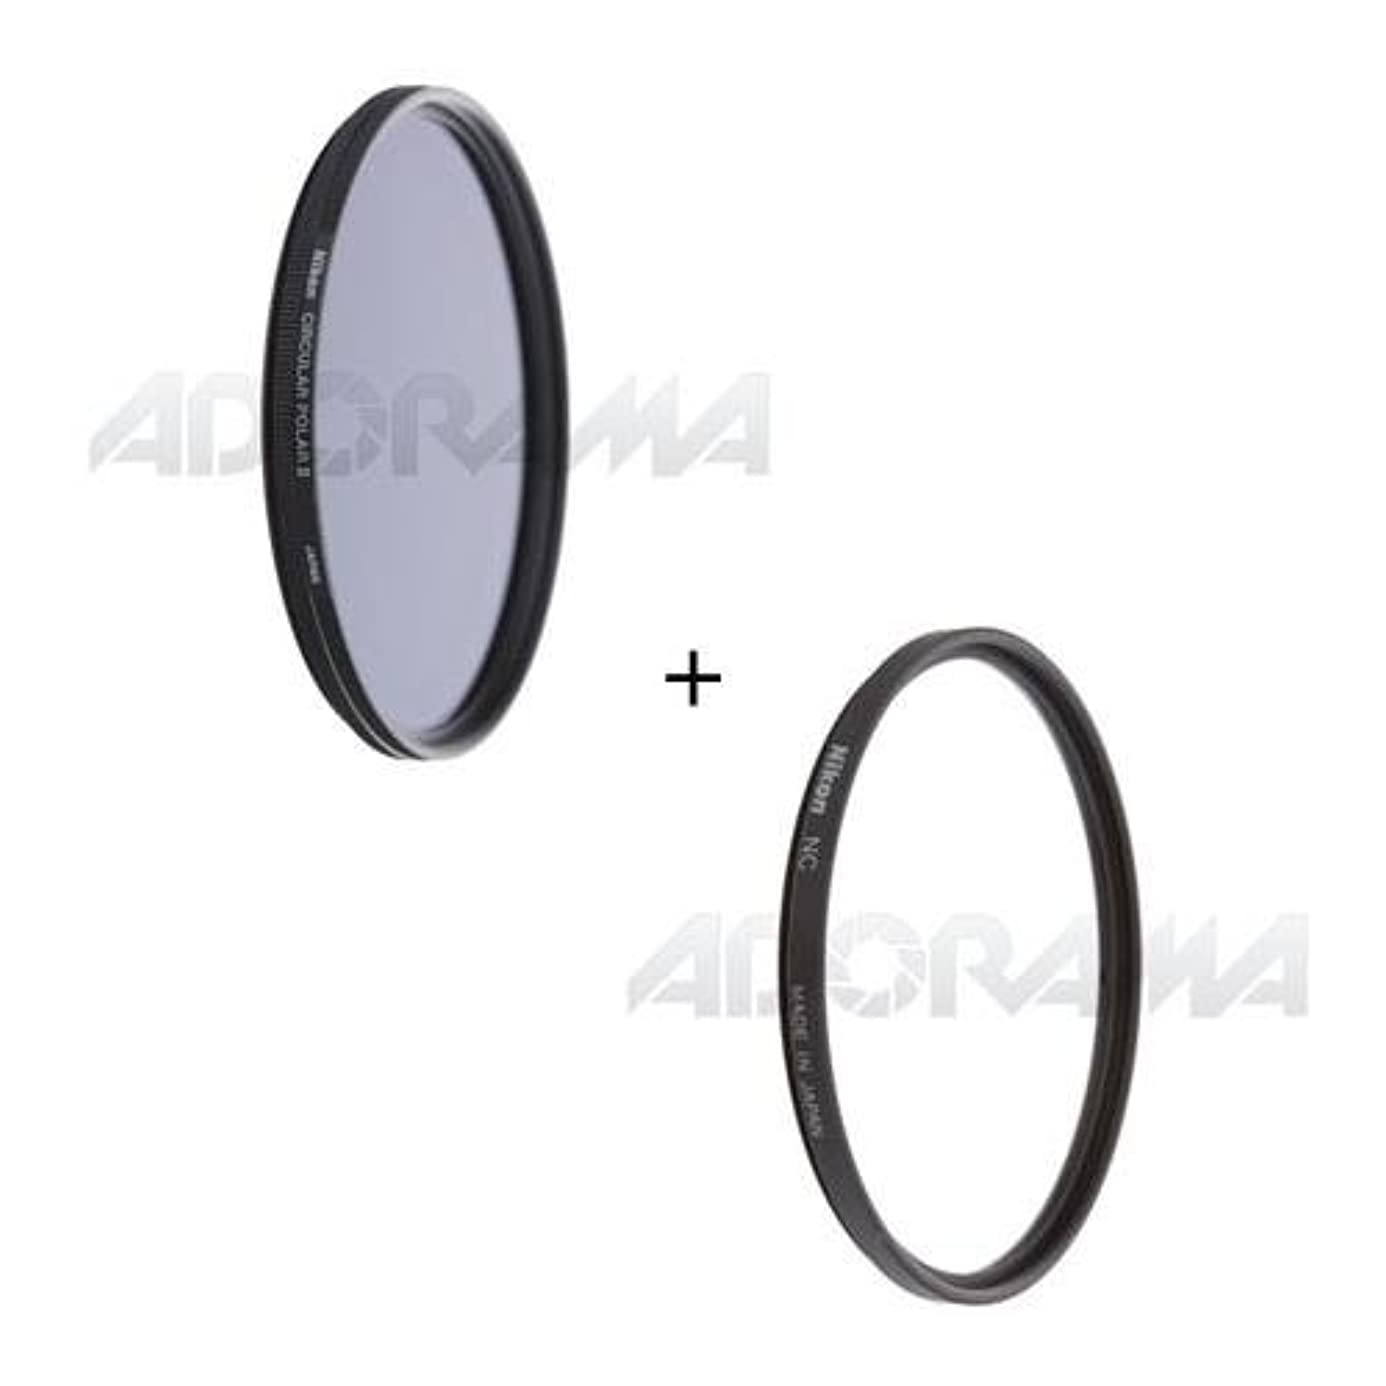 Nikon 77mm Filter Set, 77mm NC Neutral Clear Filter and 77mm Circular Polarizer II Thin Ring Multi-Coated Filter hfx8428659